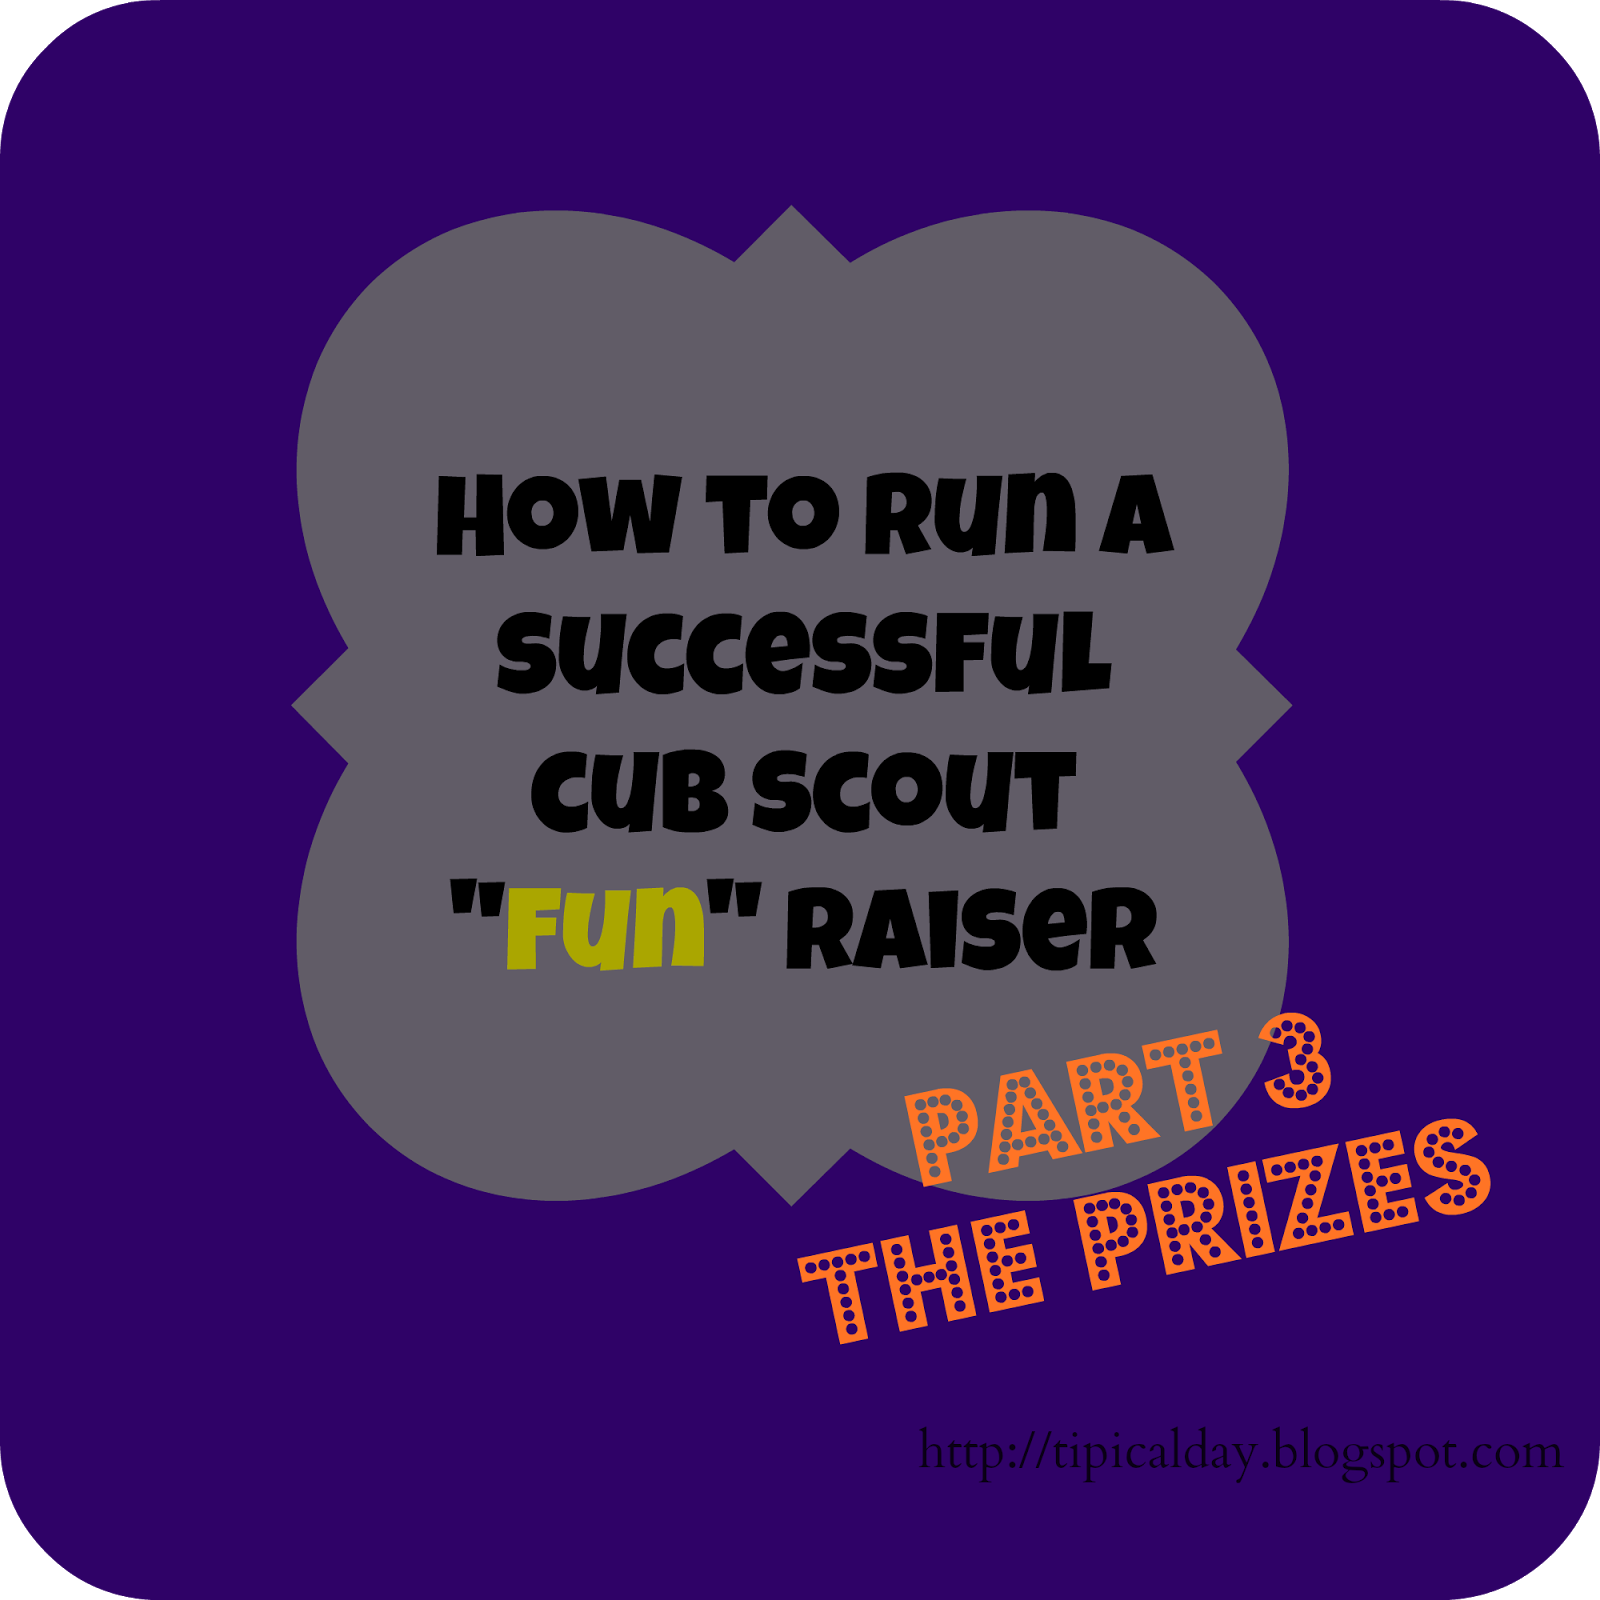 a tipical day: cub scout fundraising - part 3 (the prizes with more